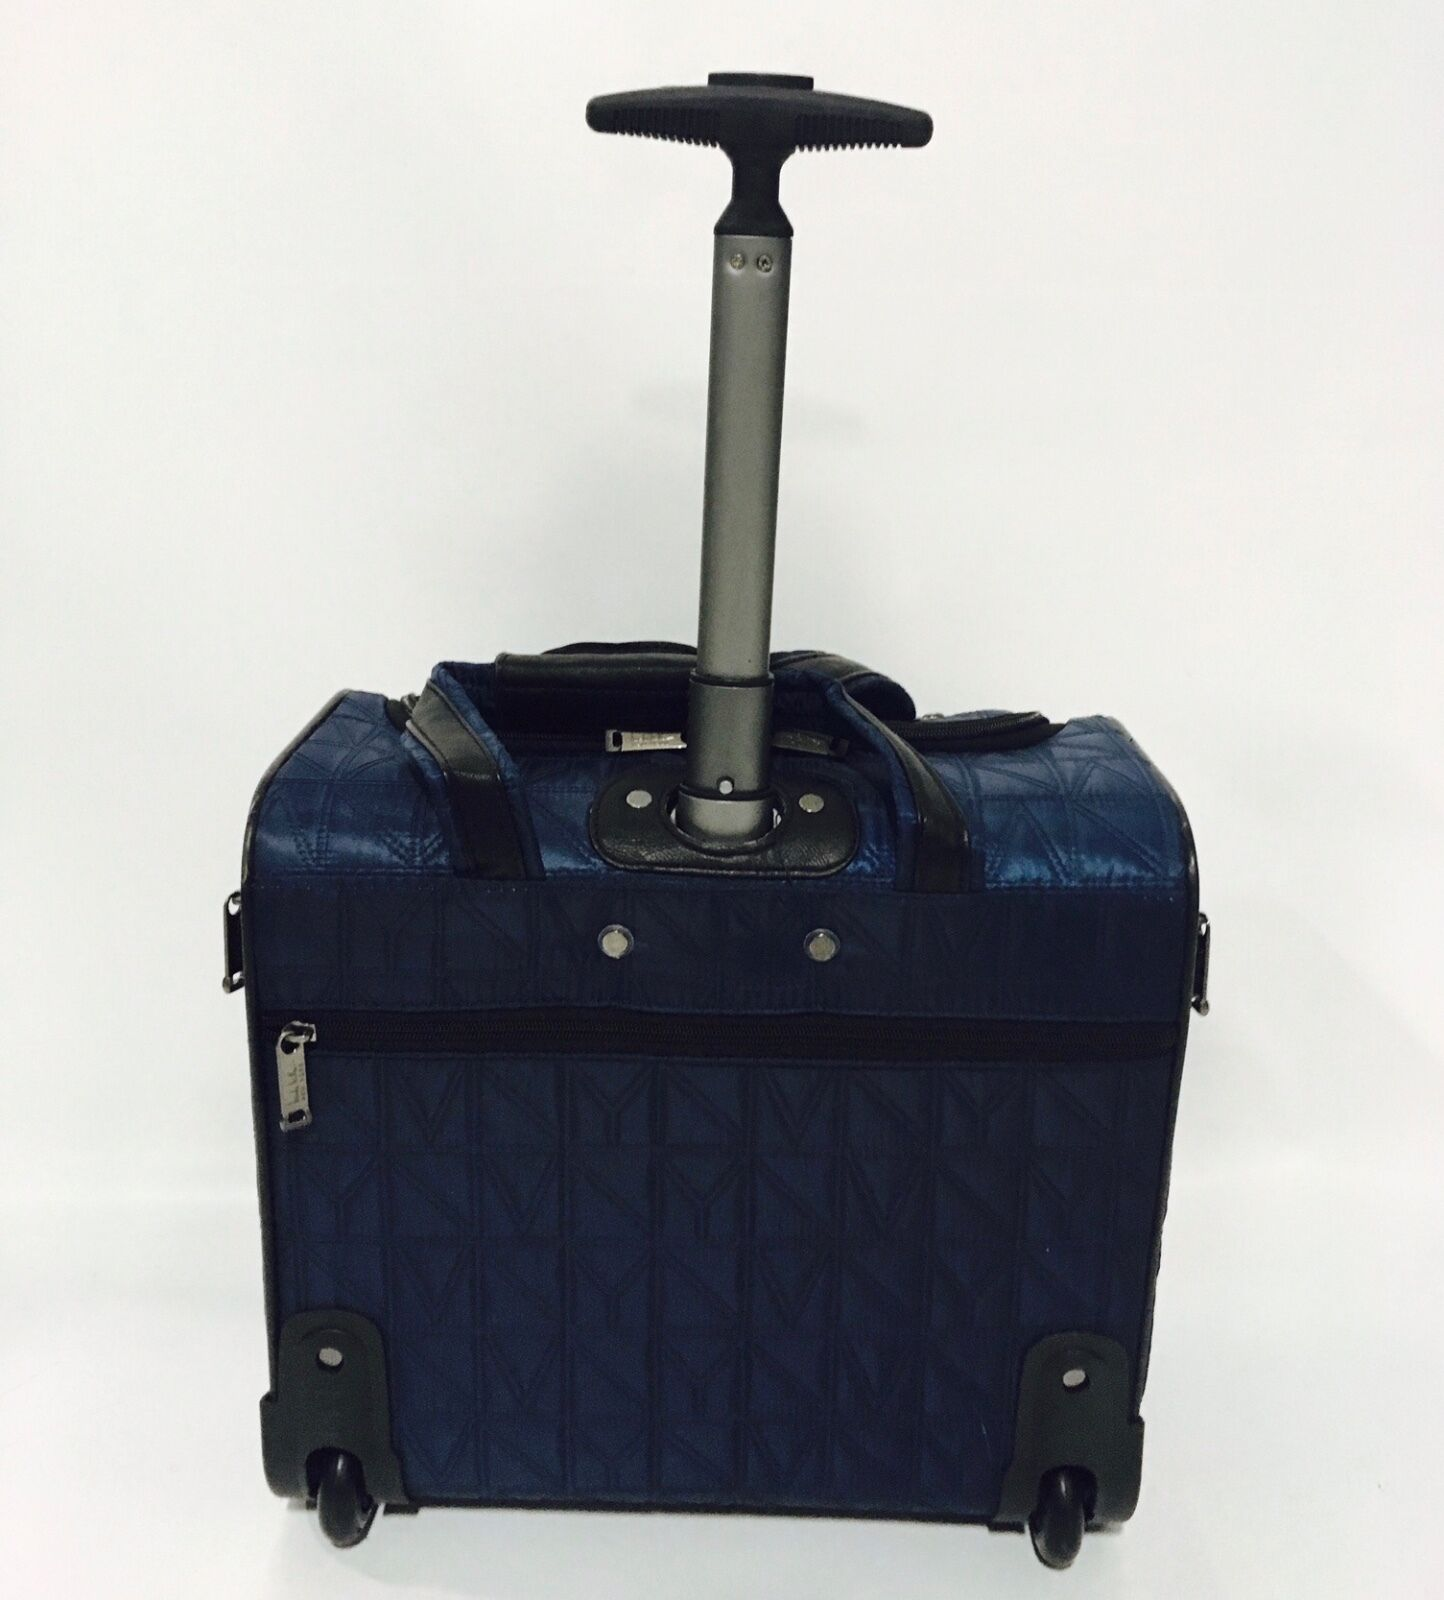 NEW NICOLE MILLER SIGNATURE QUILT LUGGAGE UNDER SEAT CARRY ON NAVY 240 - $69.95